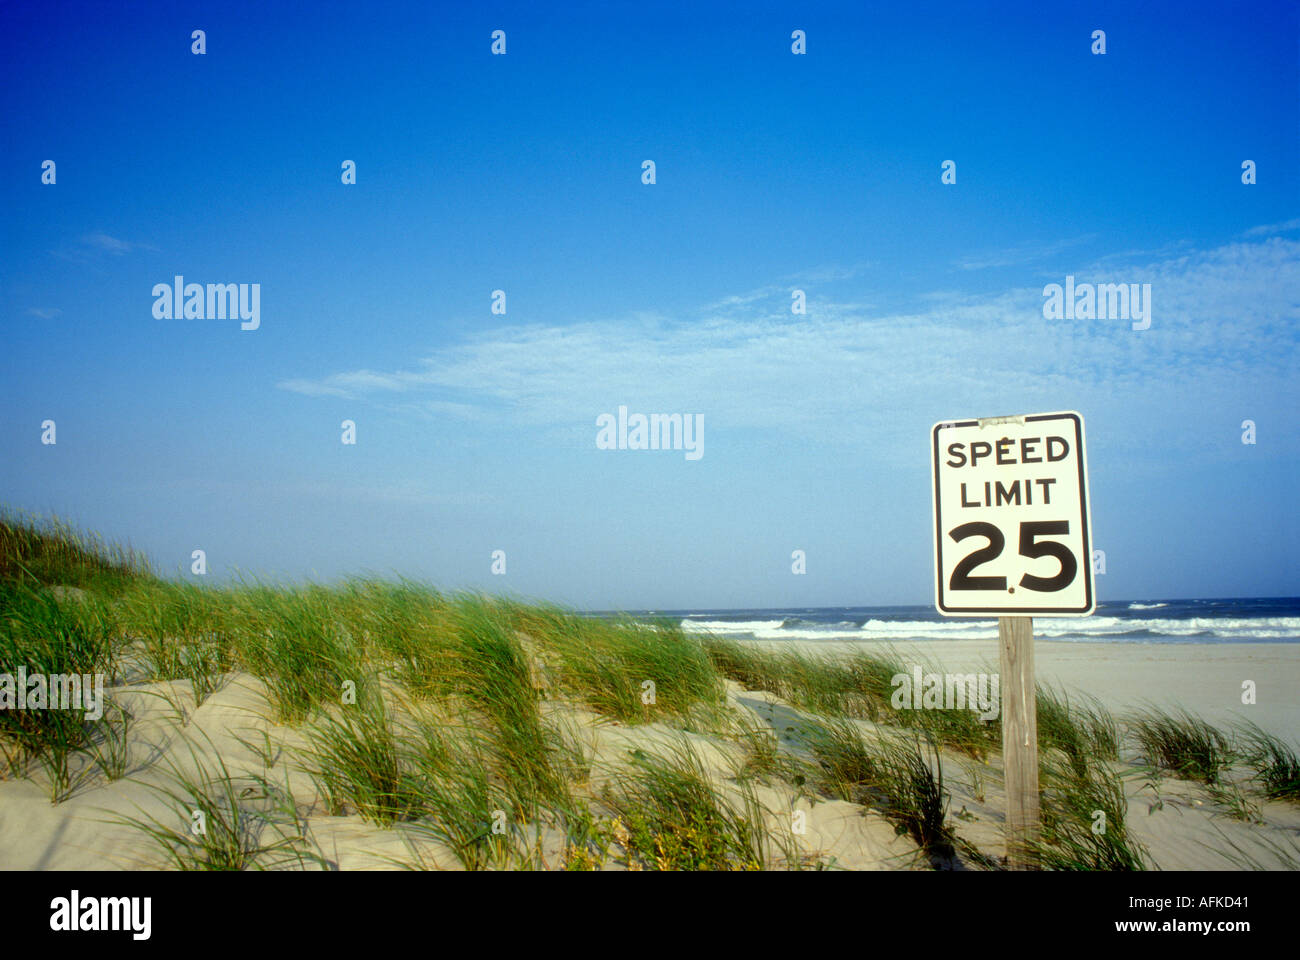 25mph speed limit sign on sand dunes in the Outer Banks of North